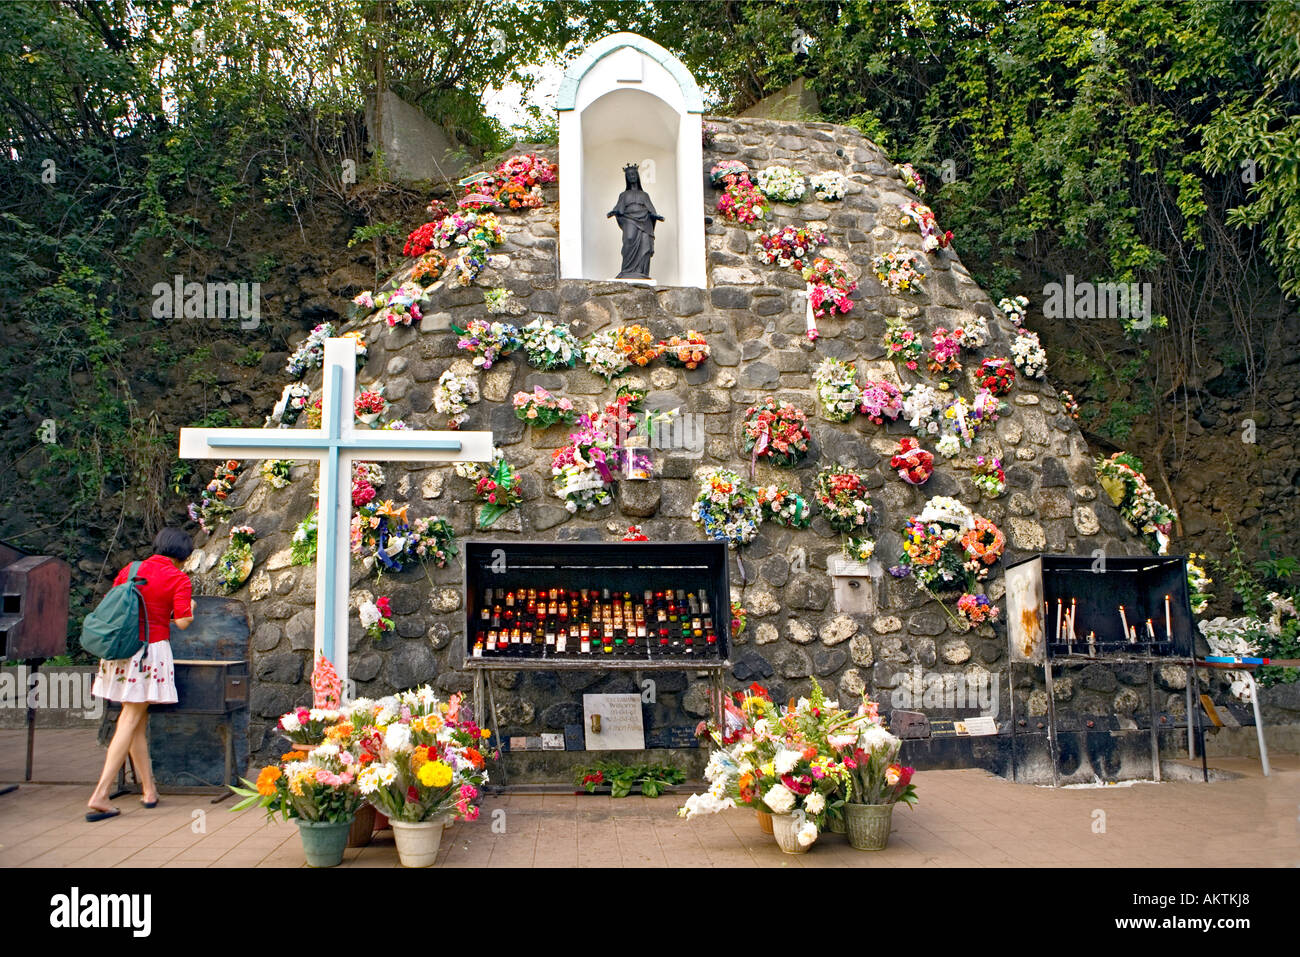 Réunion Island - Black Virgin Shrine, Grotto. (Lieu de Pèlerinage, grotte de La Vierge Noire) - Stock Image